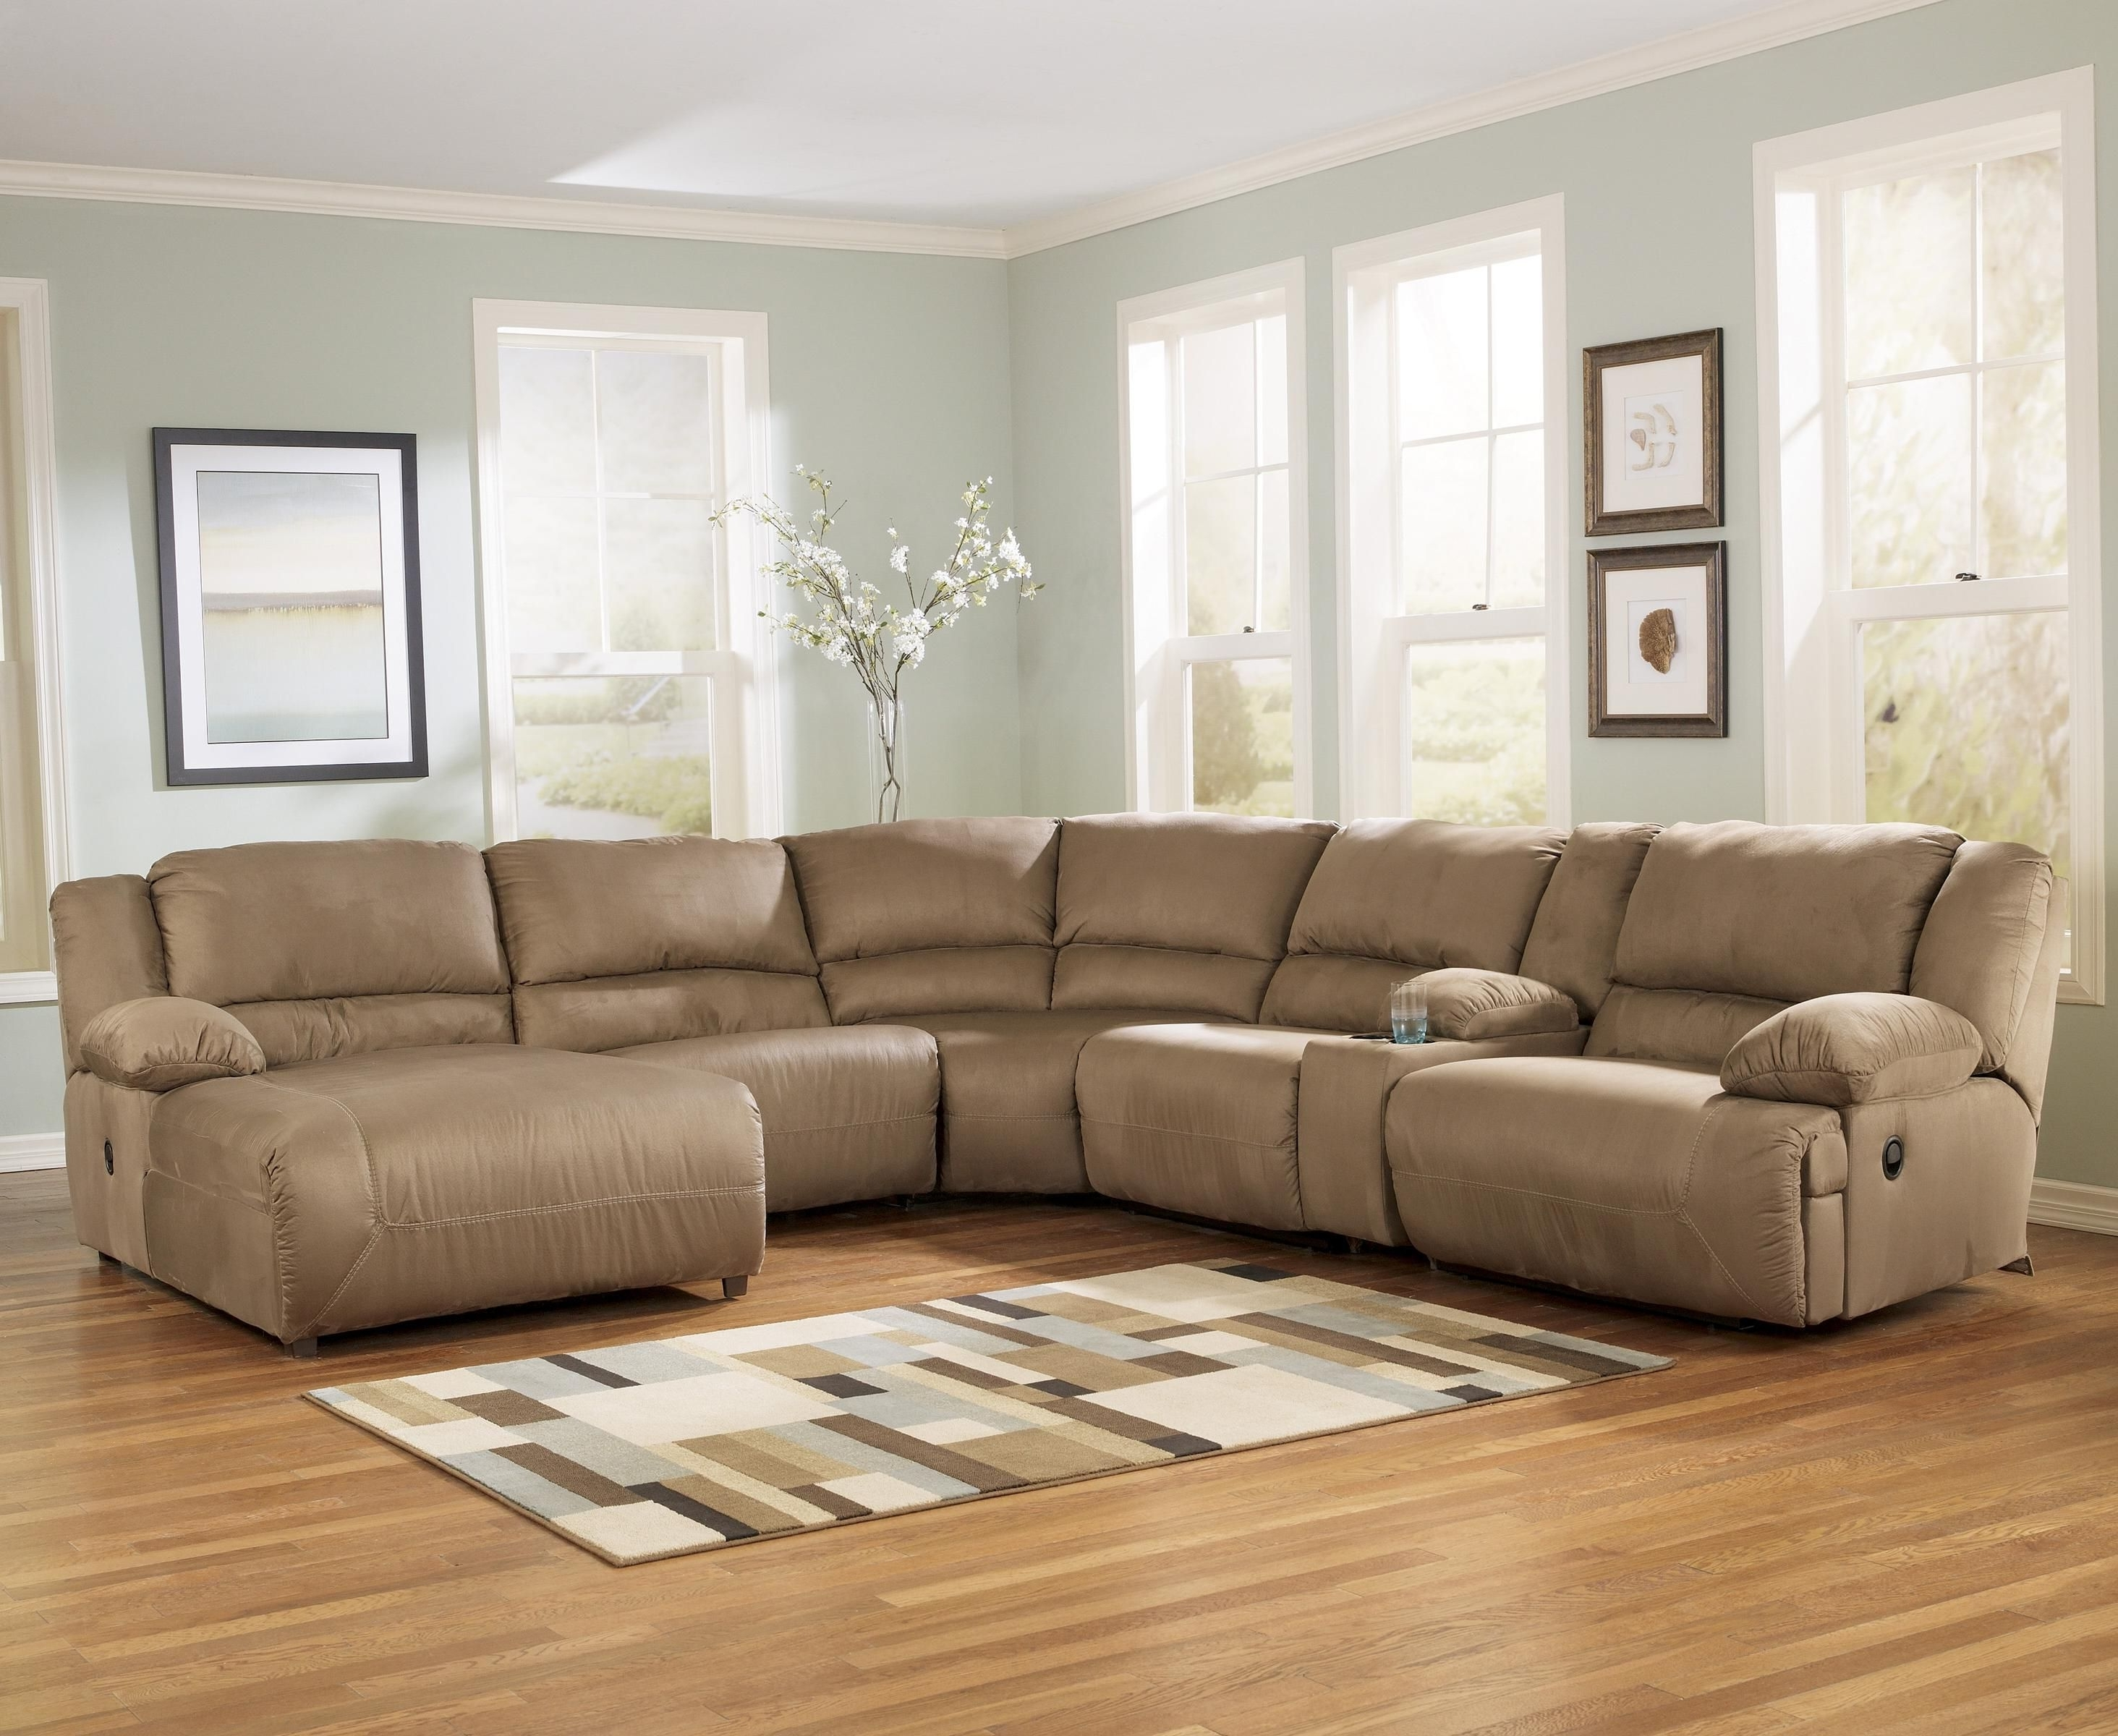 Hogan – Mocha 6 Piece Motion Sectional With Right Chaise And For Popular St Cloud Mn Sectional Sofas (View 14 of 20)